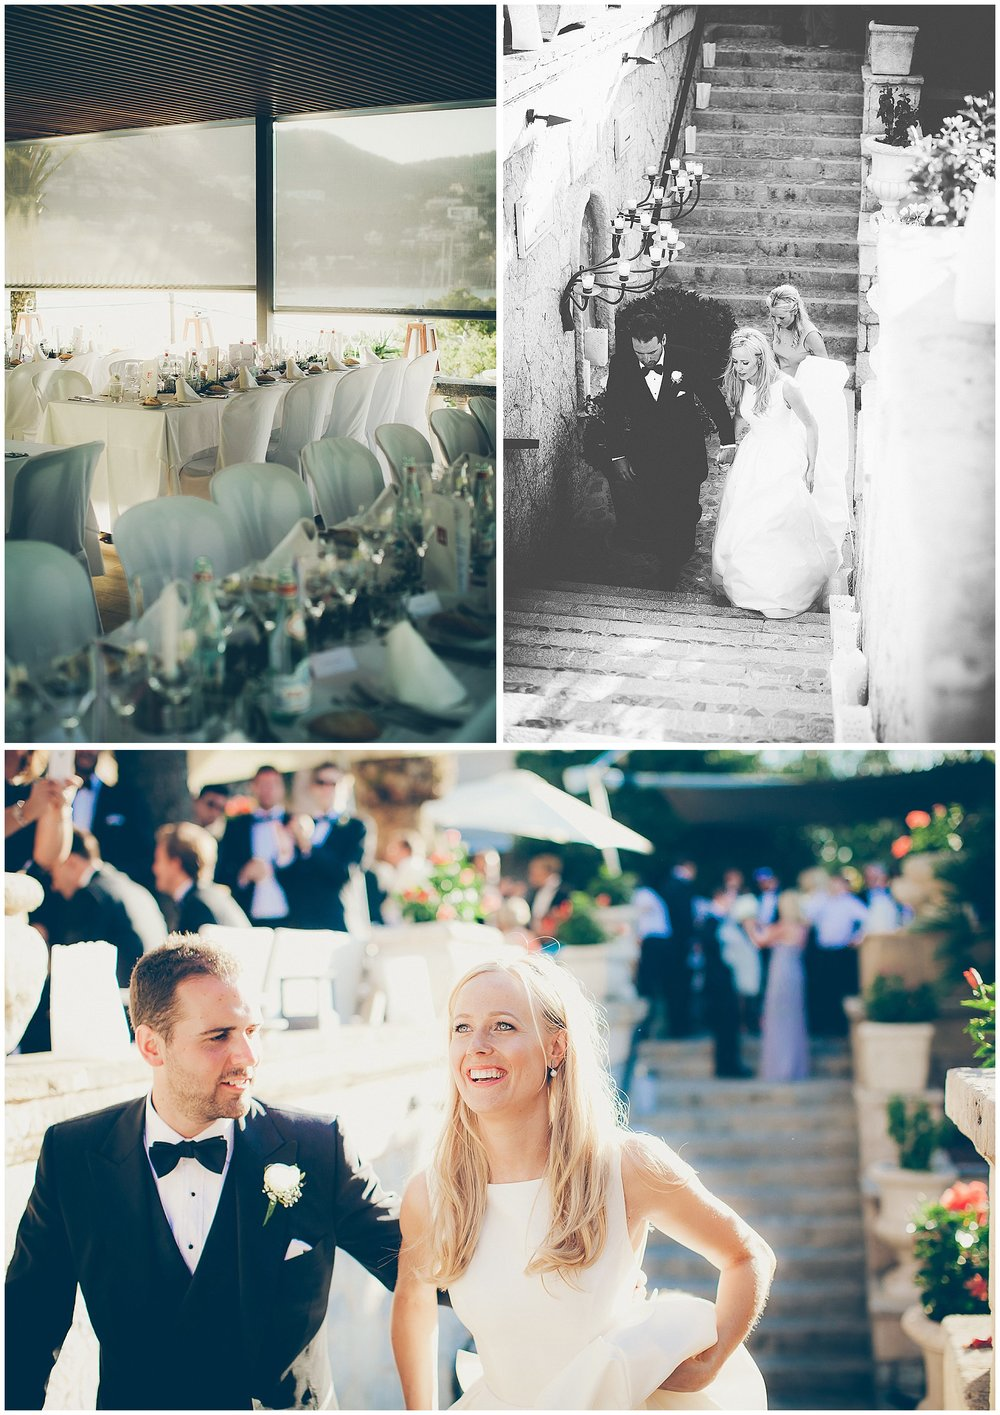 Church_VillaItalia_MallorcaWedding_FionaClairPhotography-169.jpg